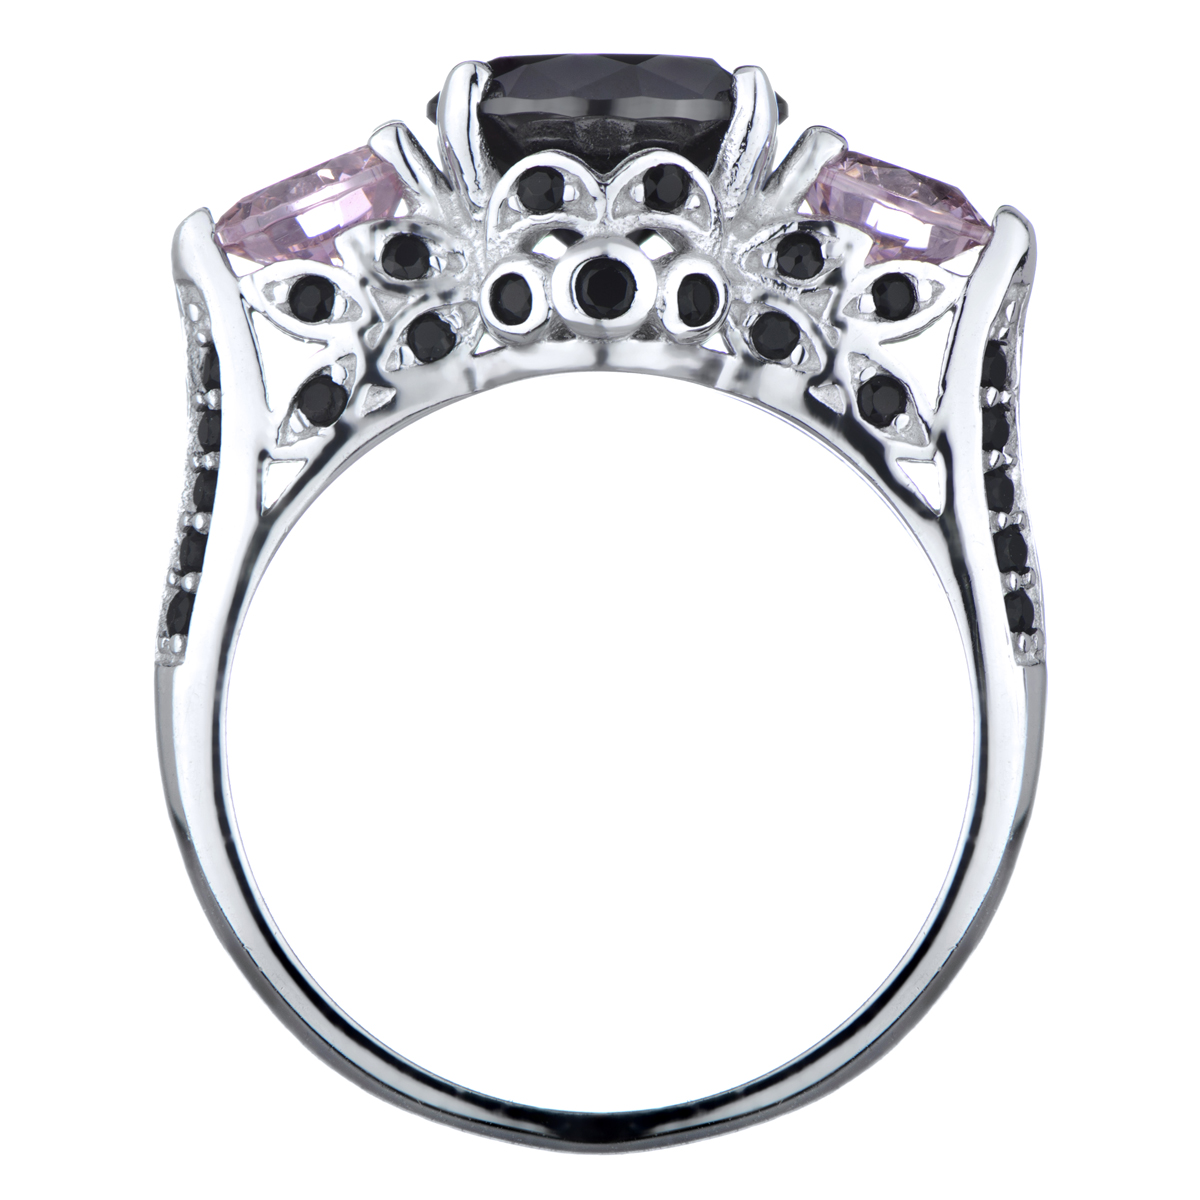 Piper s Pink and Black CZ Engagement Ring